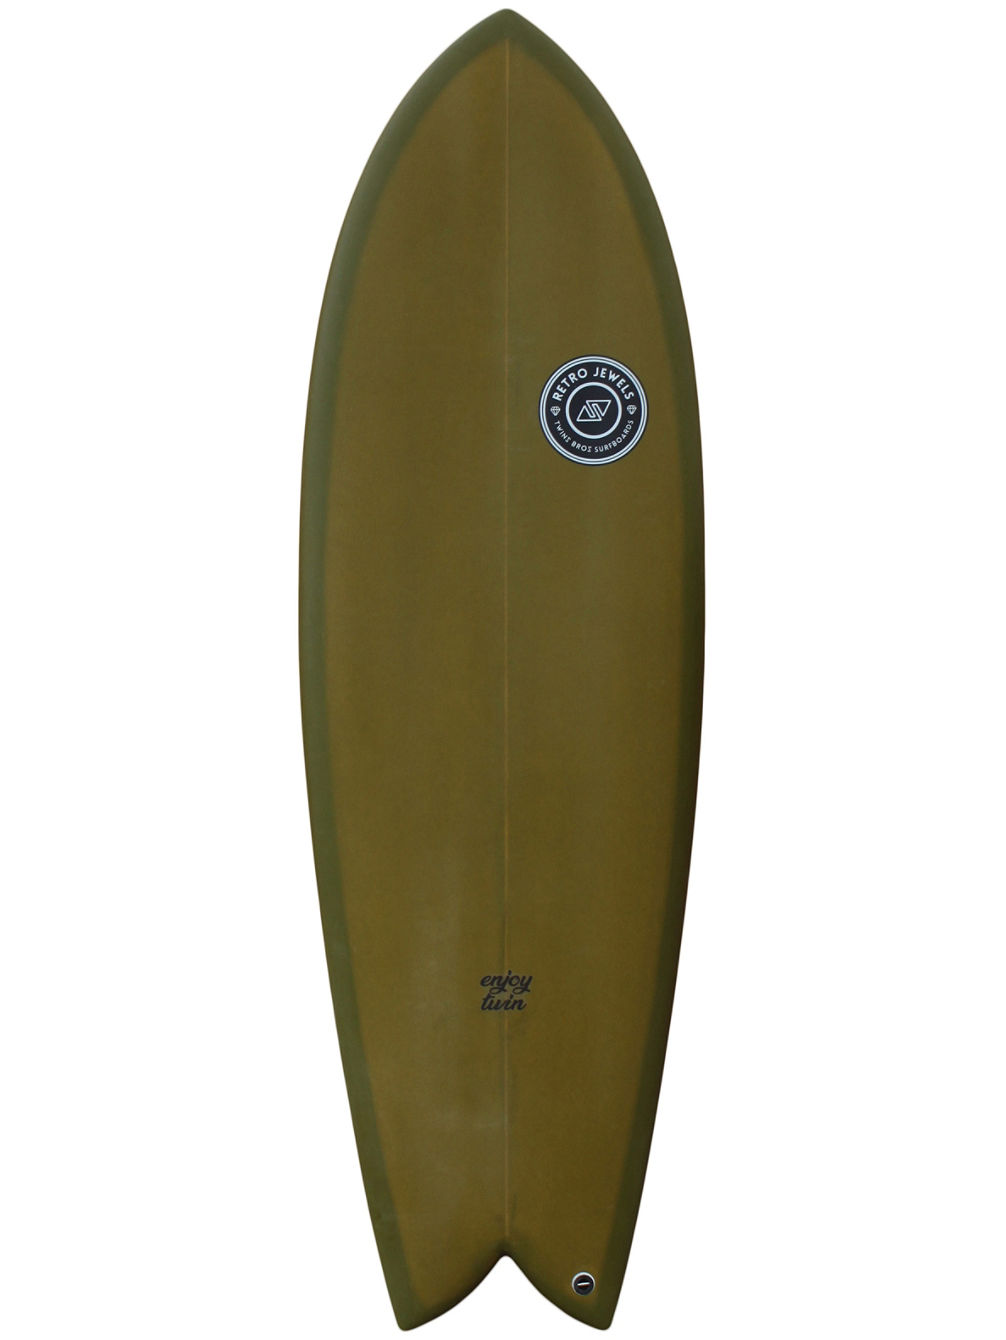 Enjoy Twin FCS2 6'0 Surfboard